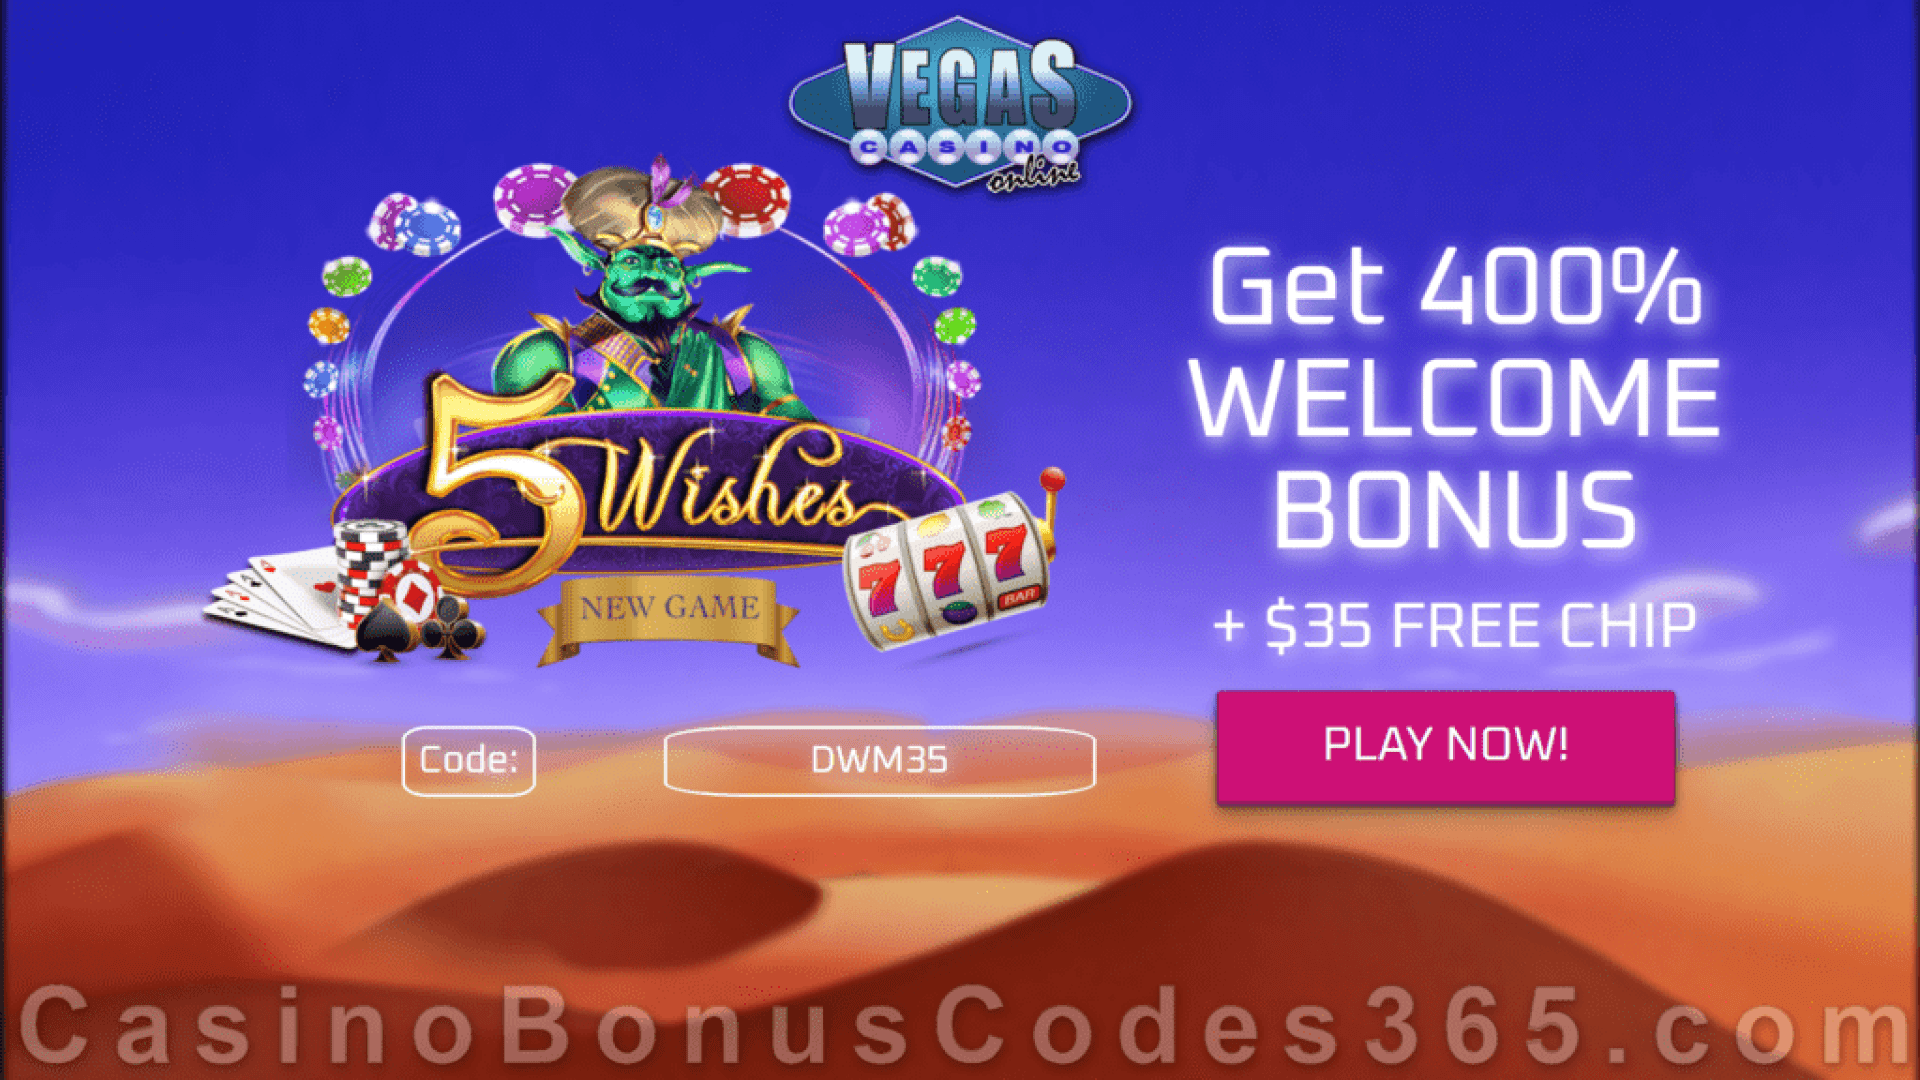 Vegas Casino Online $35 FREE Chip Special Sign Up Offer RTG 5 Wishes